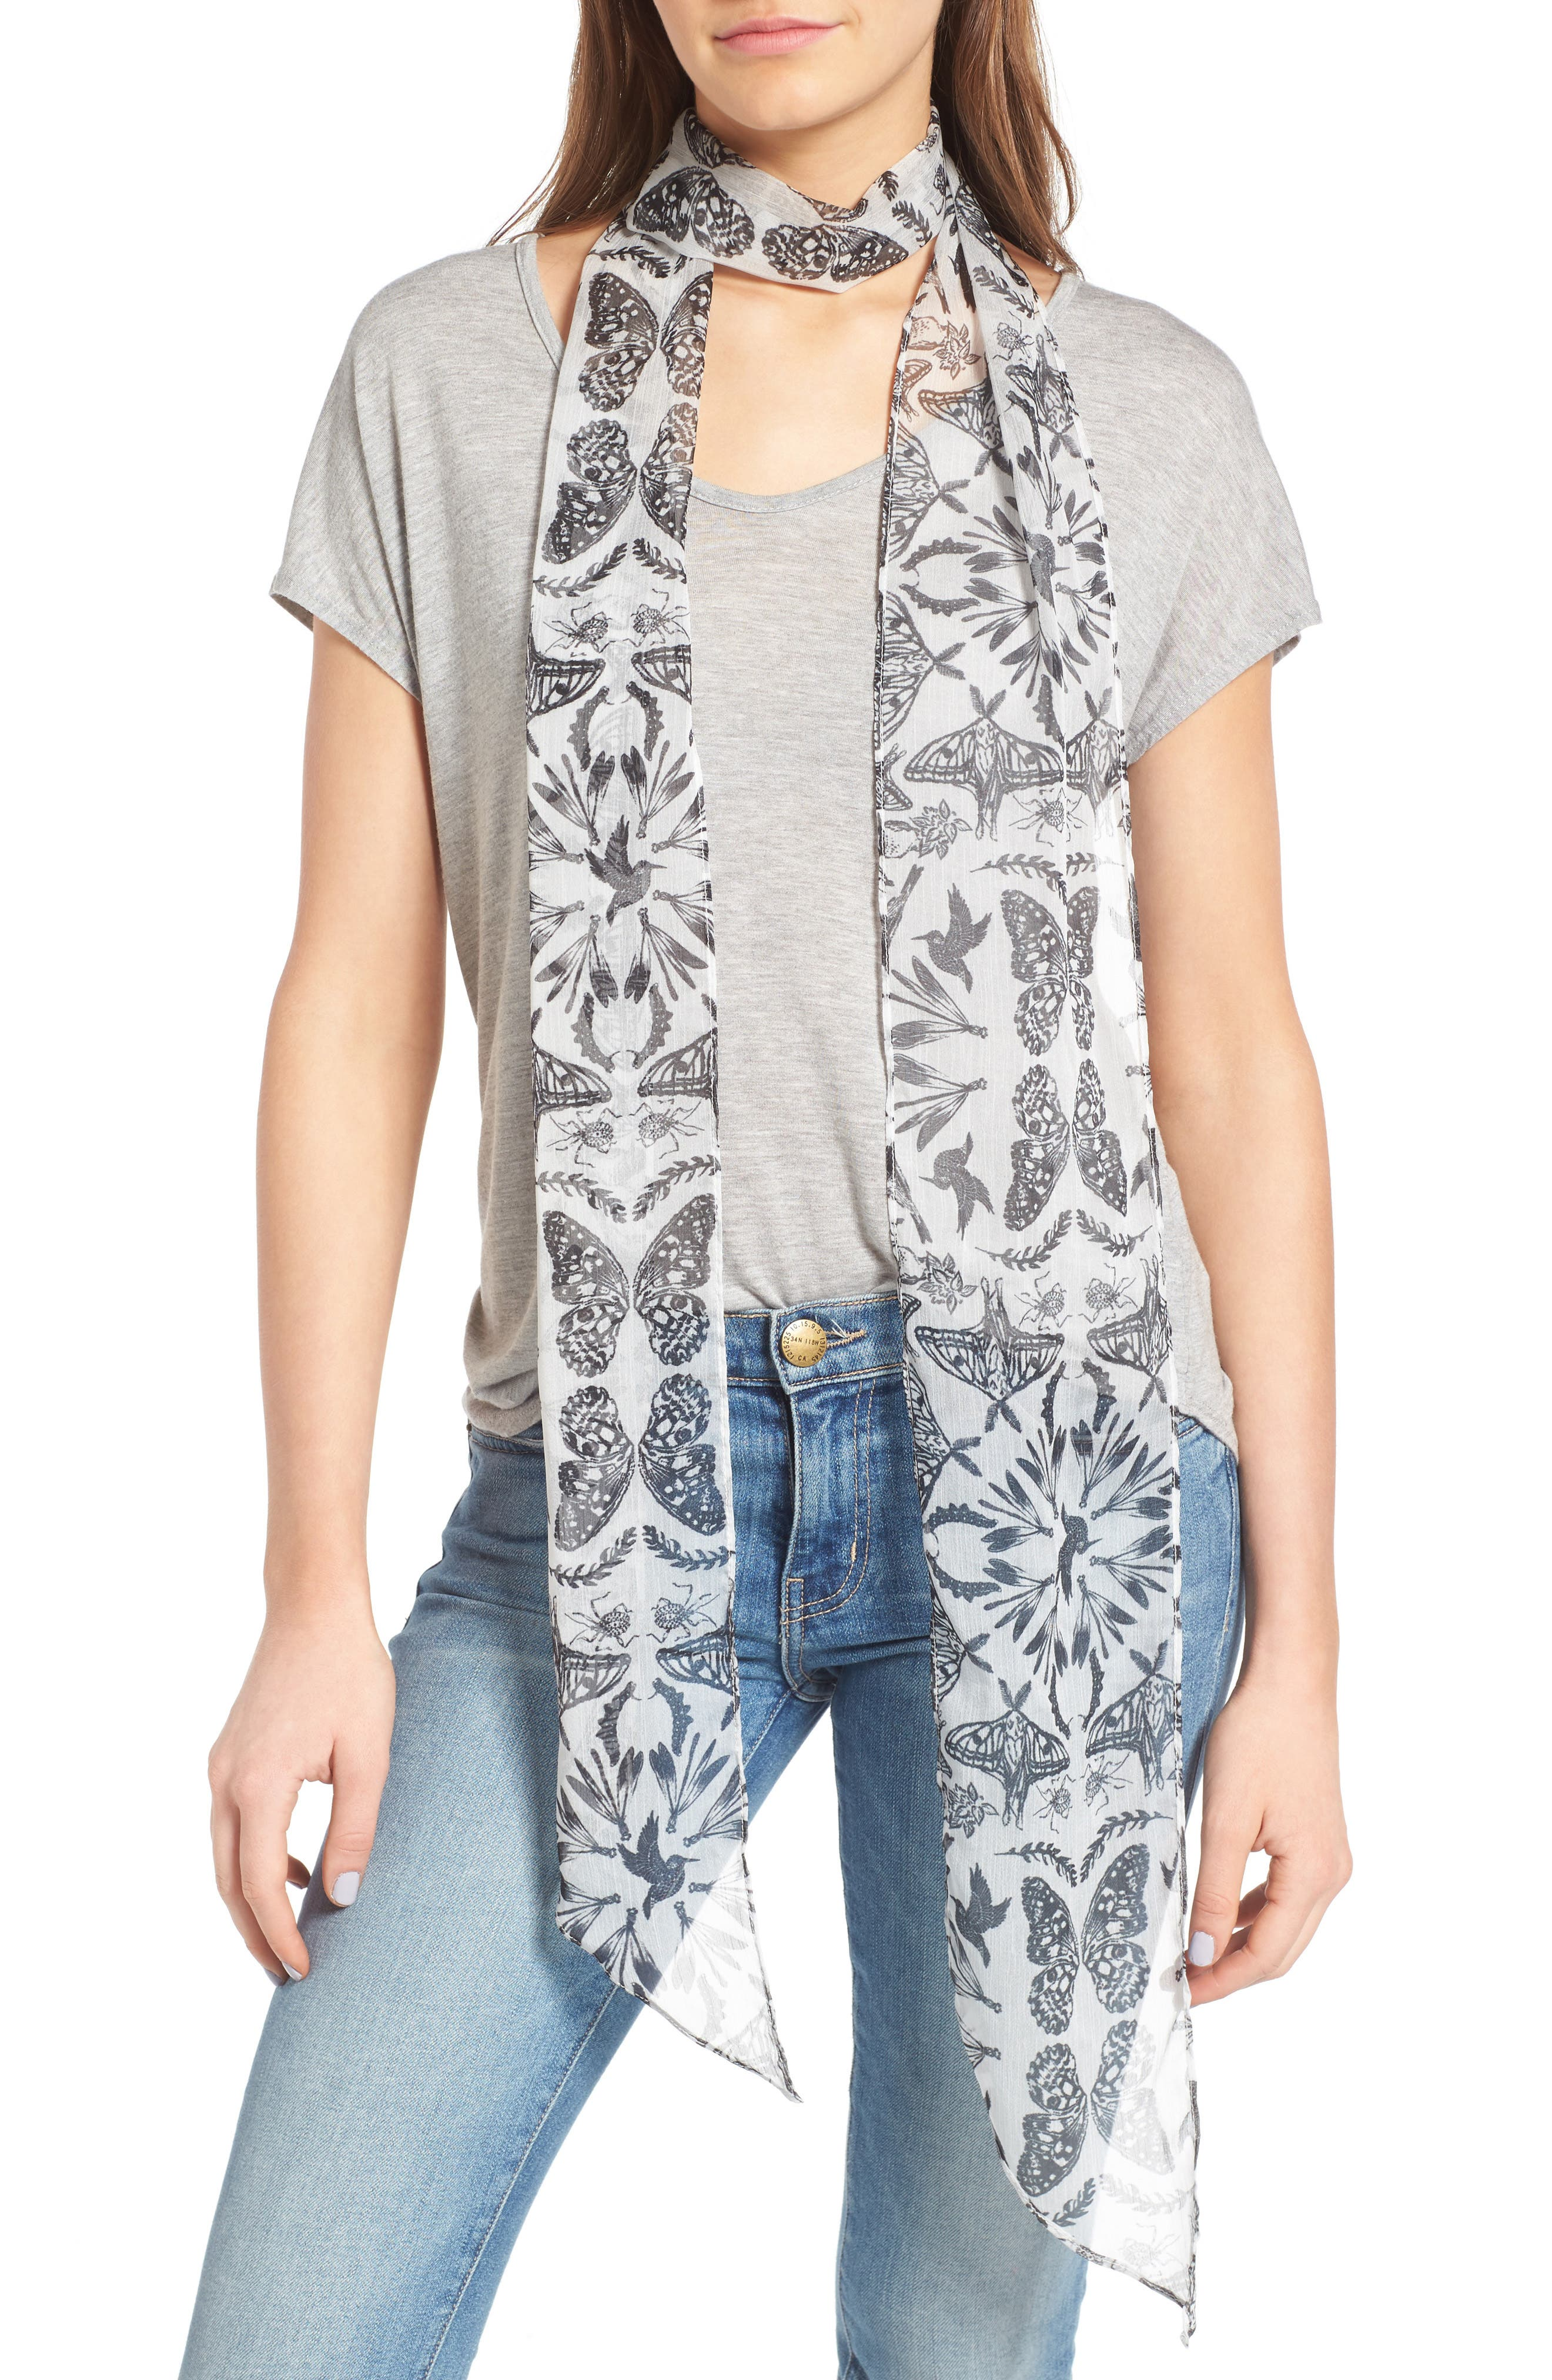 Hinge Whimsical Wings Skinny Scarf